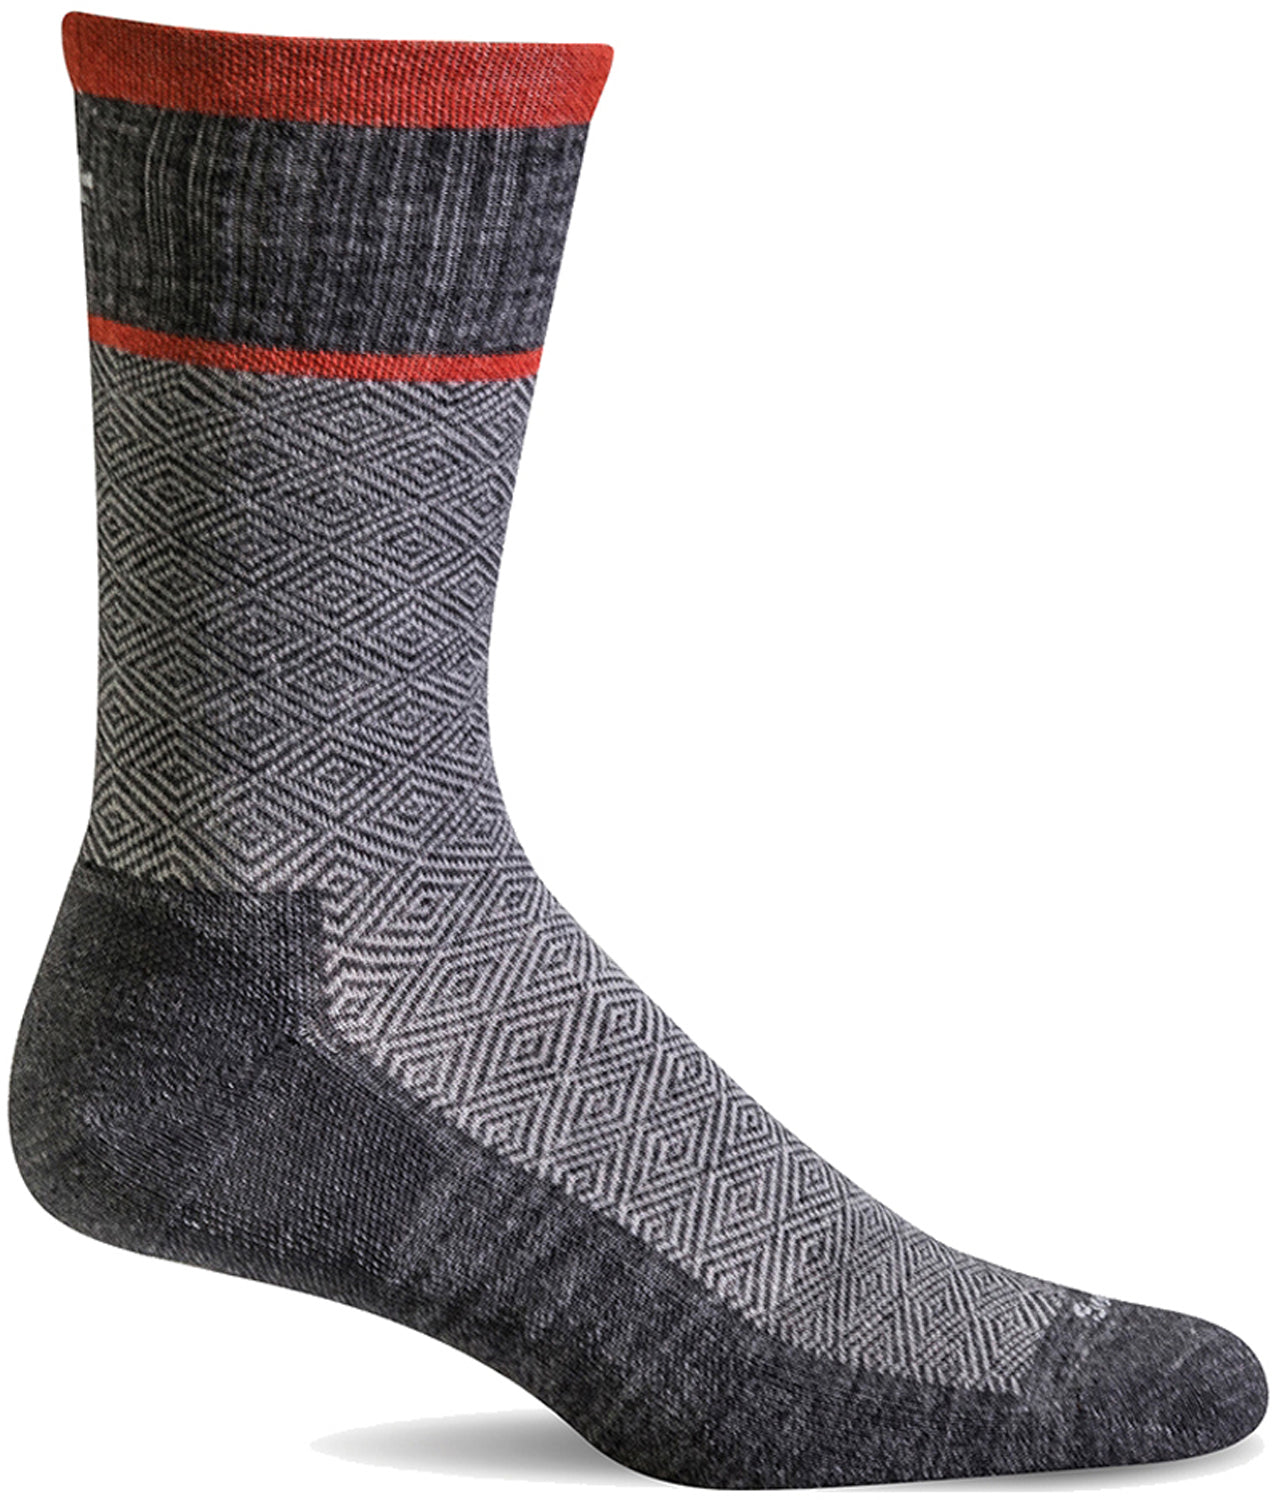 Sockwell Men's Plantar Cush Crew Sock in Charcoal color from the side